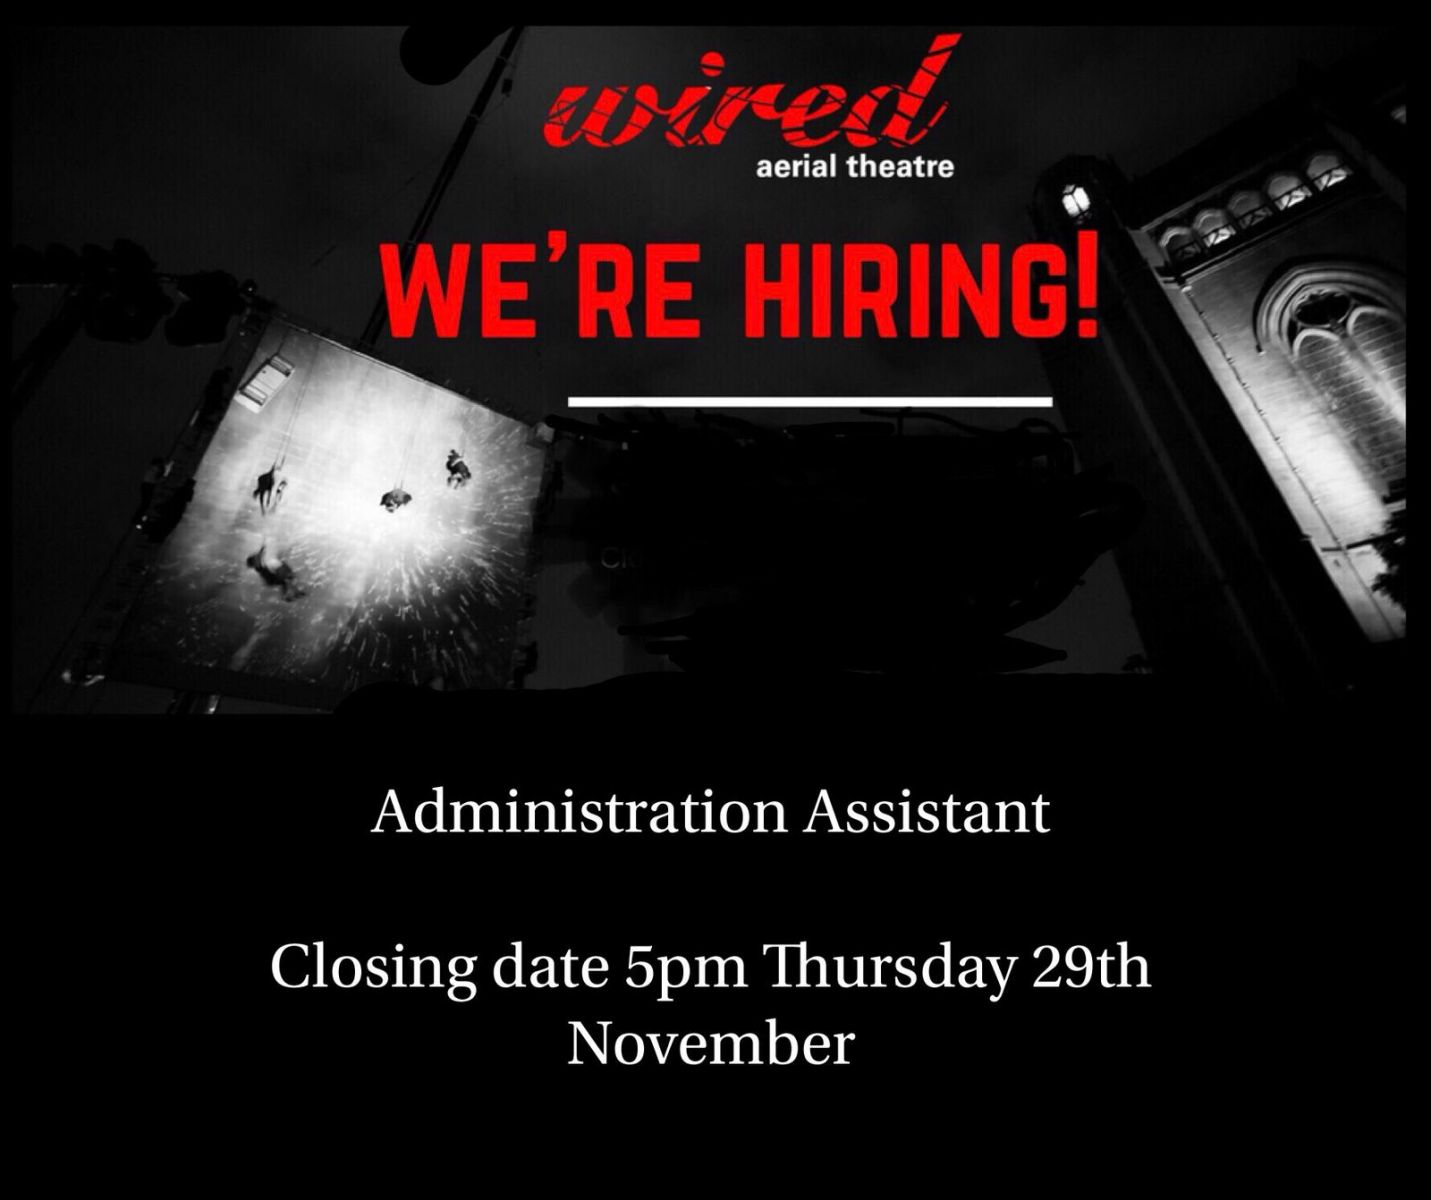 Wired Are Hiring: Administration Assistant